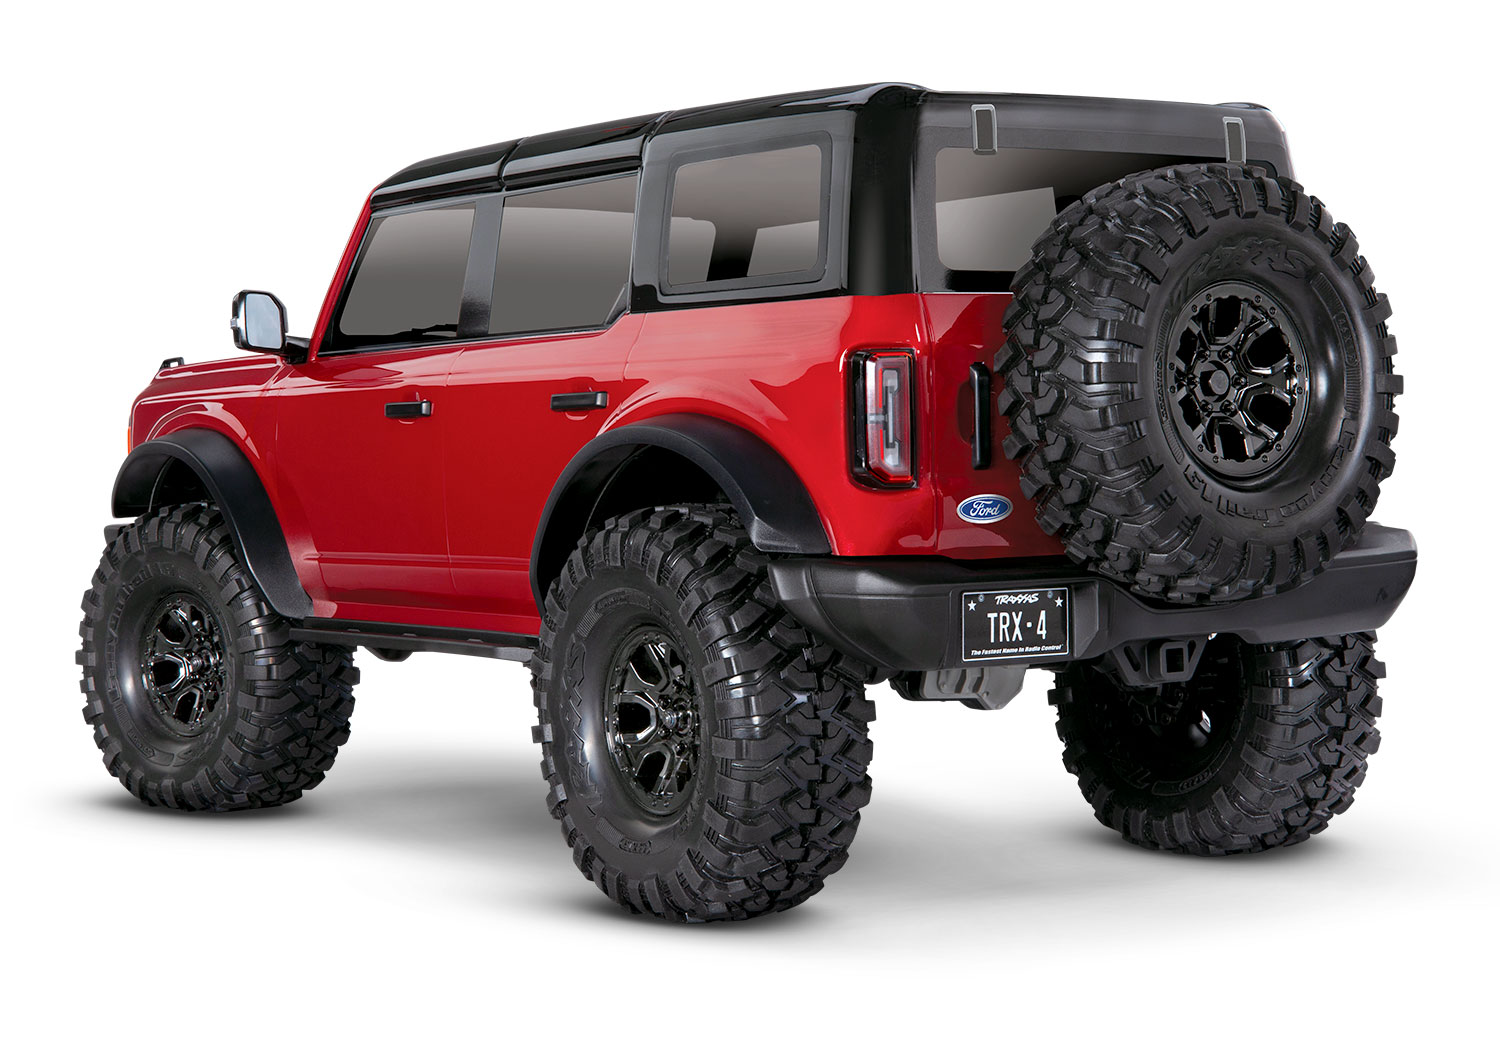 Red TRX-4 2021 Ford Bronco rear view